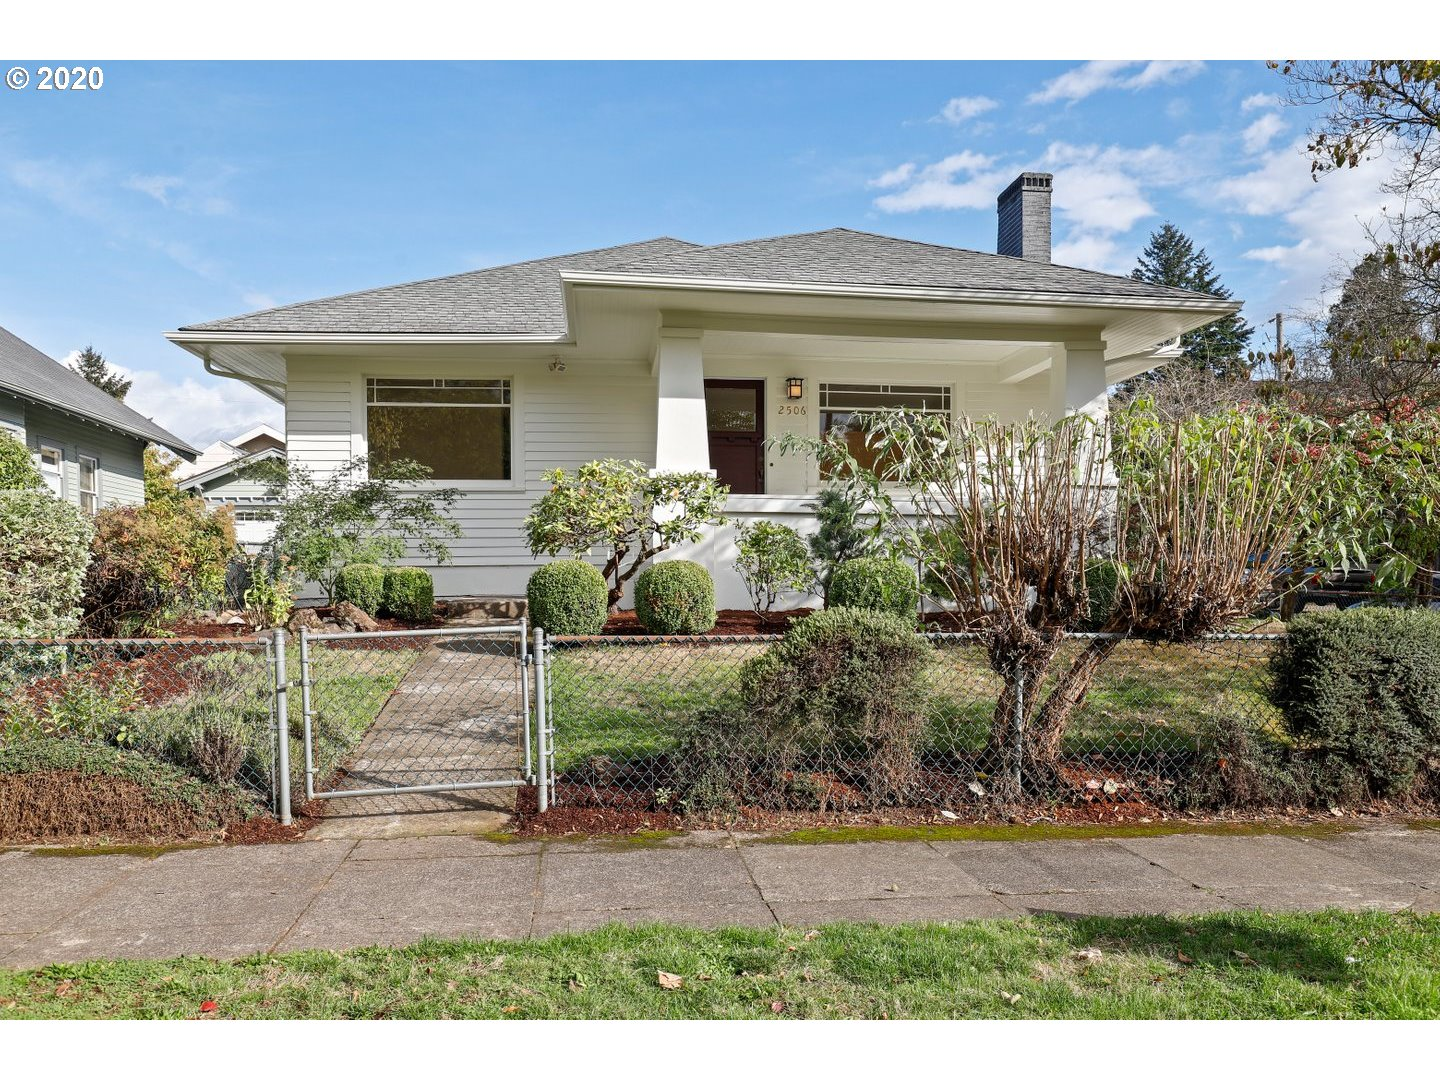 Stunning Rose City Bungalow! Front porch welcomes you home to this gorgeously updated light filled home. Lg Kitchen offers plenty of counter space, subway tile back splash, quartz counters, pantry, eating nook, all new stainless steel appliances, BI microwave & gas stove! There are 3 spacious bedrms on main level & an updated bathrm. Basement offers 2 additional bedrms, updated bathrm w/step in shower, large storage rm W exterior door and potential to be finished as well! [Home Energy Score = 4. HES Report at https://rpt.greenbuildingregistry.com/hes/OR10067722]